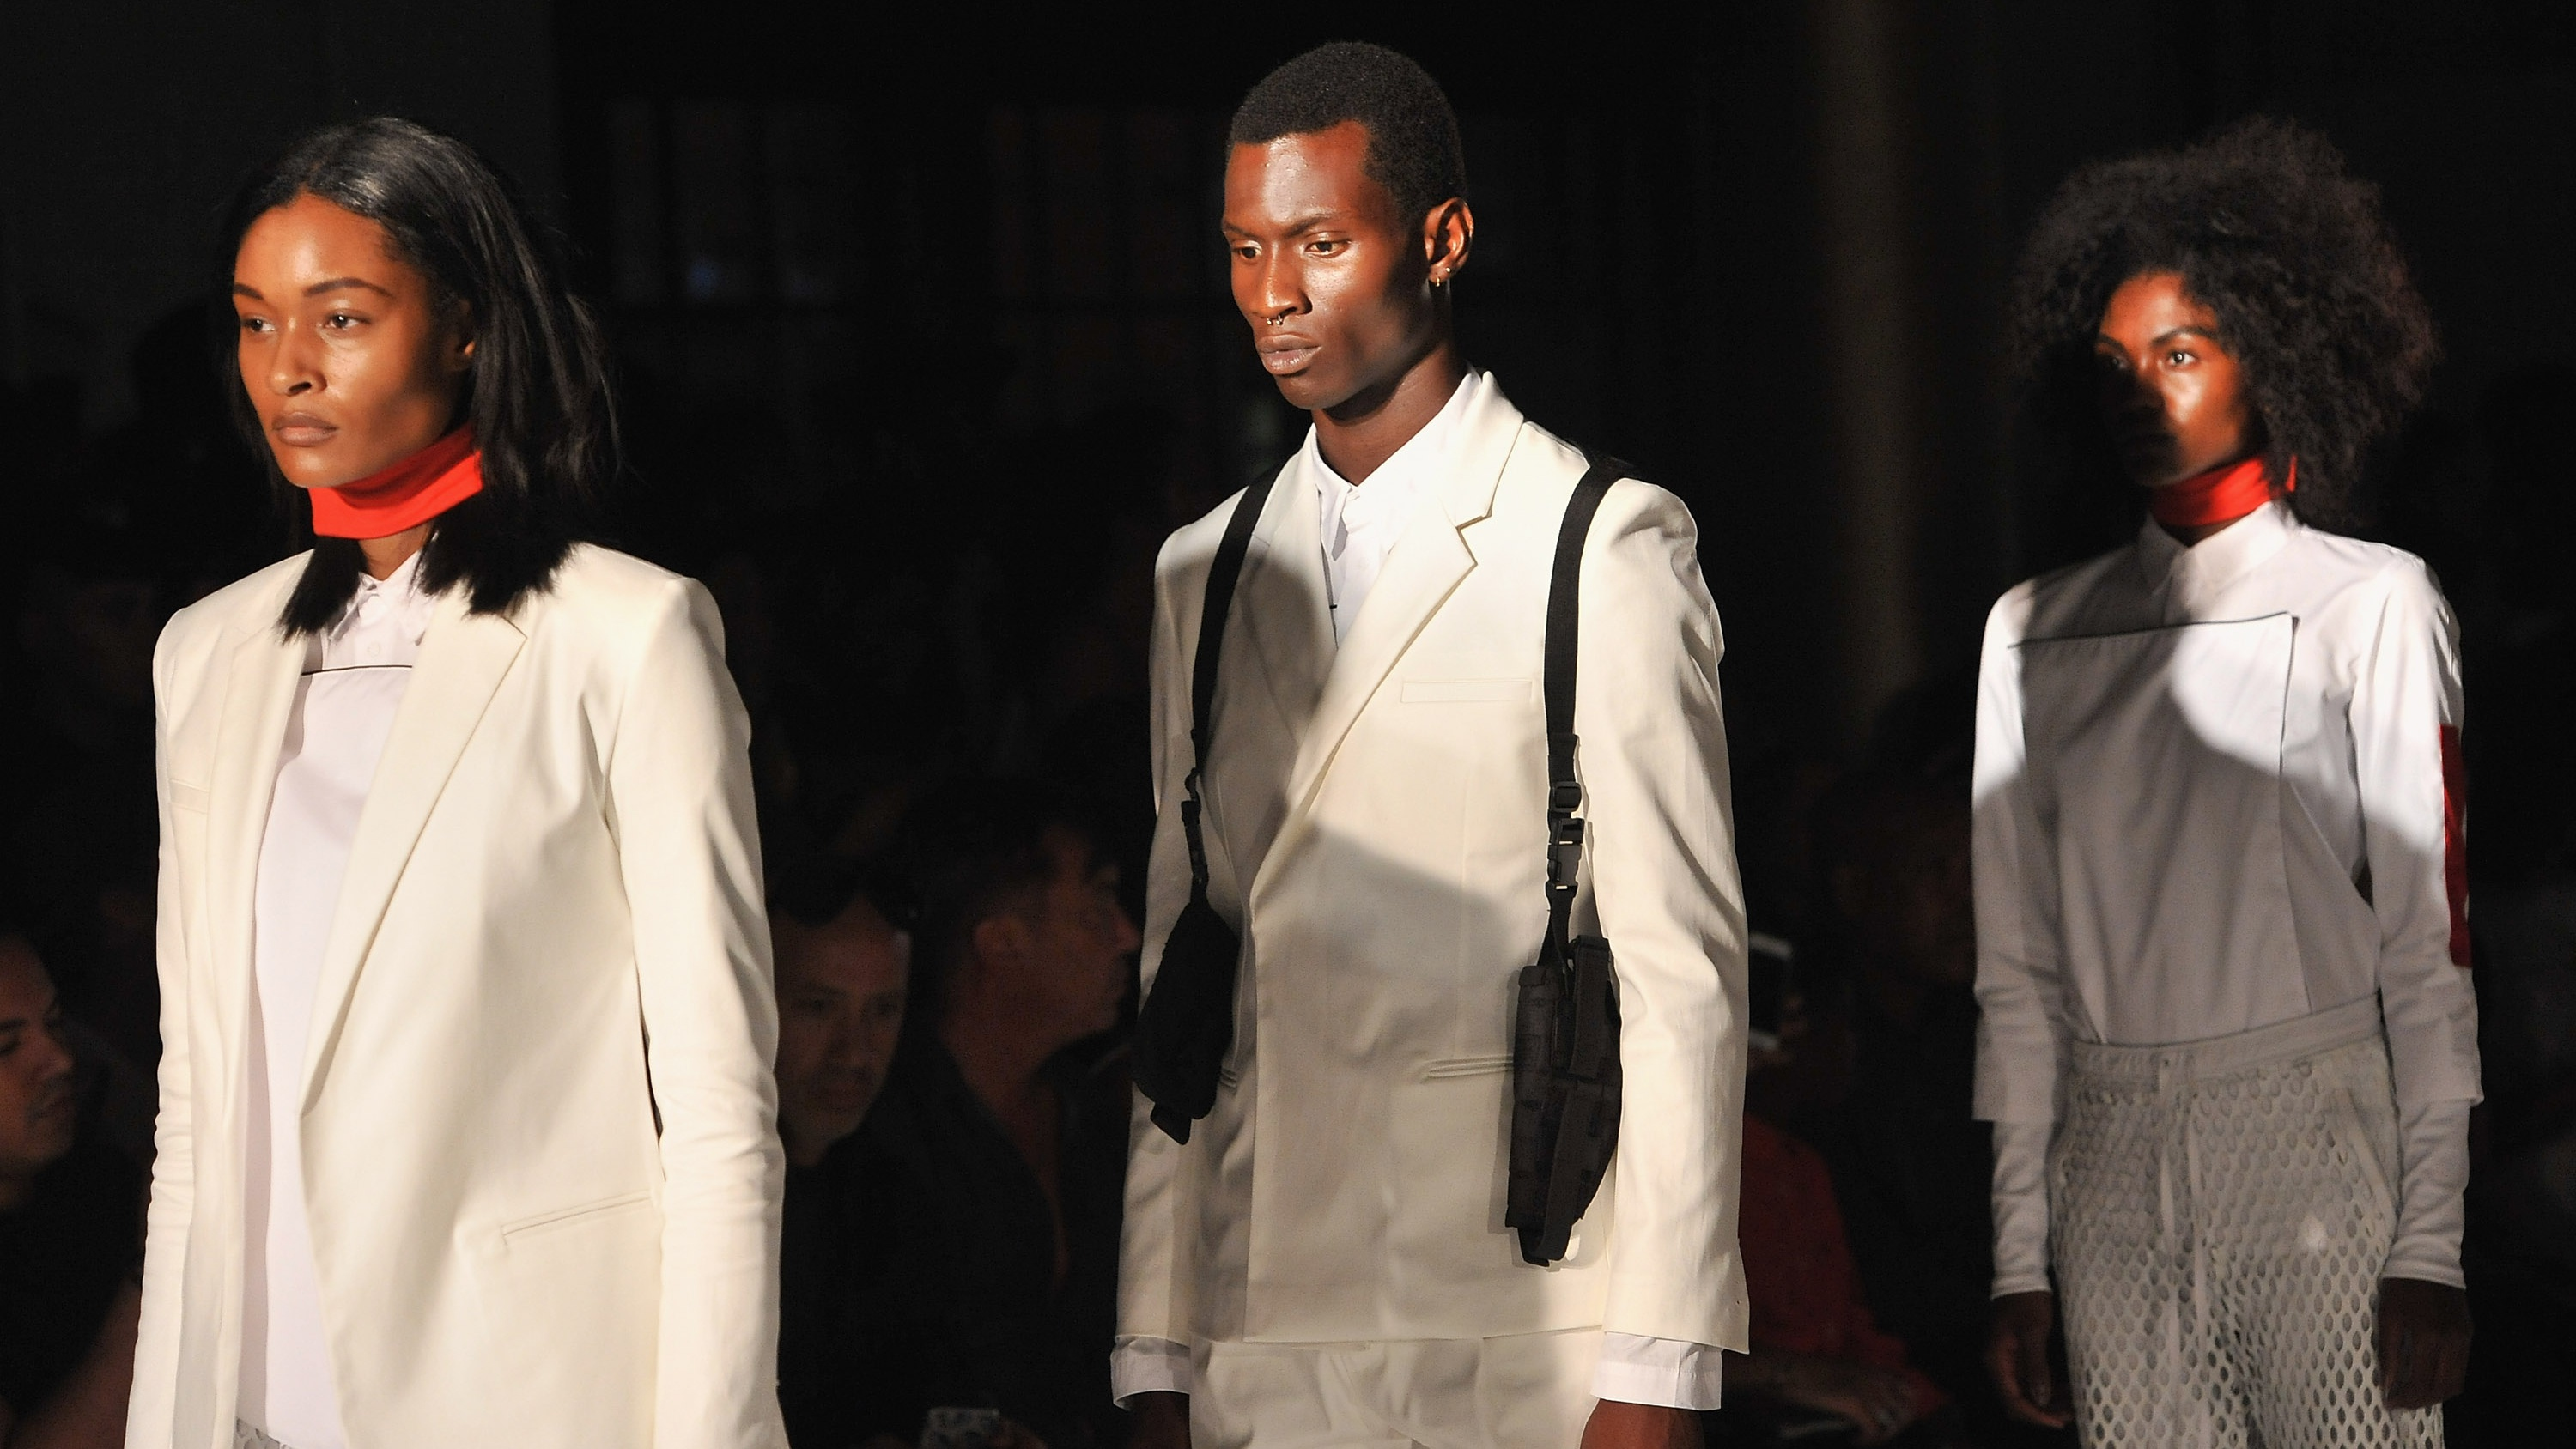 Models walk down the runway during the Pyer Moss fashion show during Spring 2016 New York Fashion Week at the Altman Building on September 10, 2015 in New York City.